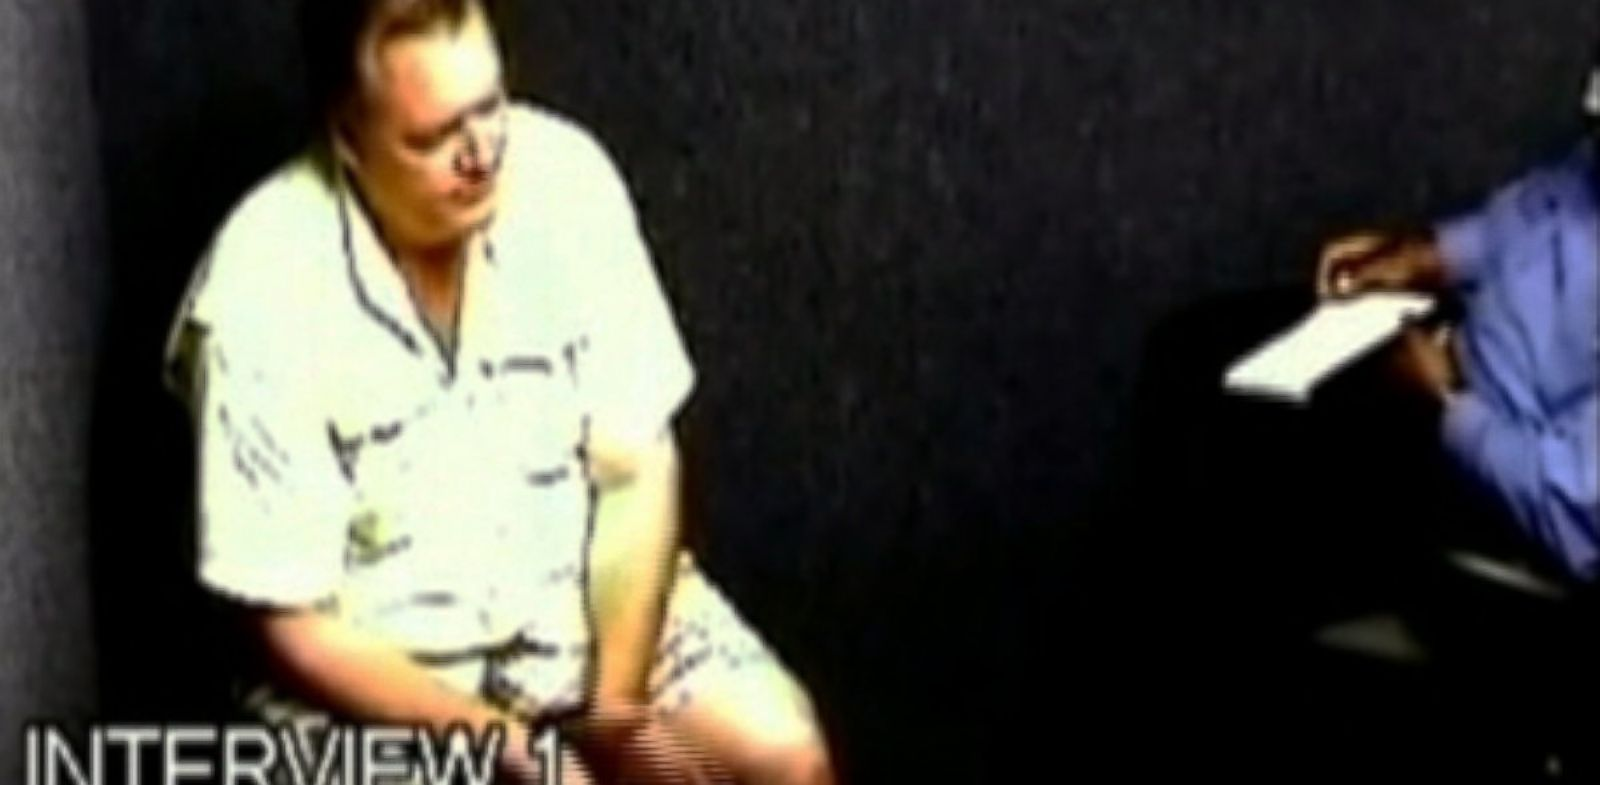 PHOTO: Footage from Michael Dunns interrogation.